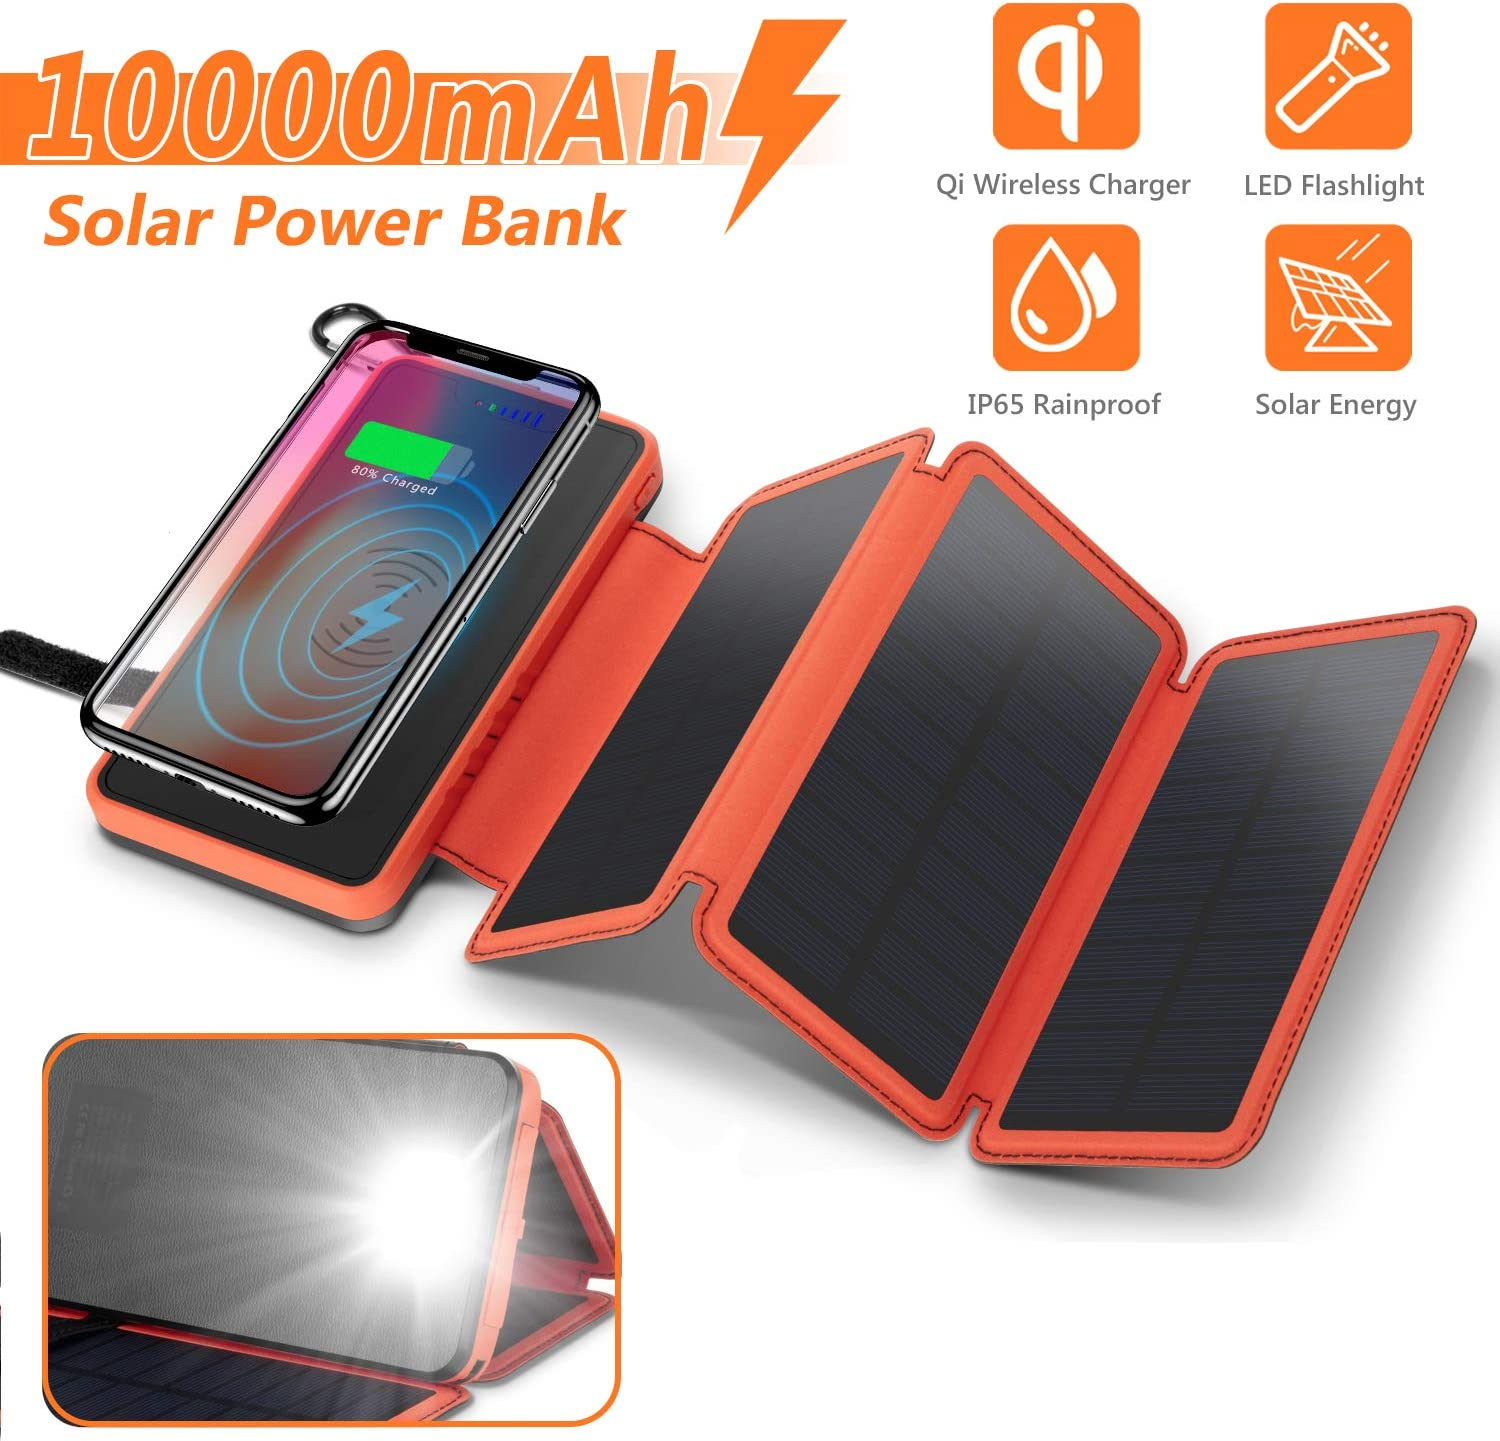 Roadiress Portable 10W Outdoor IP64 Waterproof Solar Panel Mobile Power Charger 5V USB Output Solar Power Bank Mobile Solar Charger